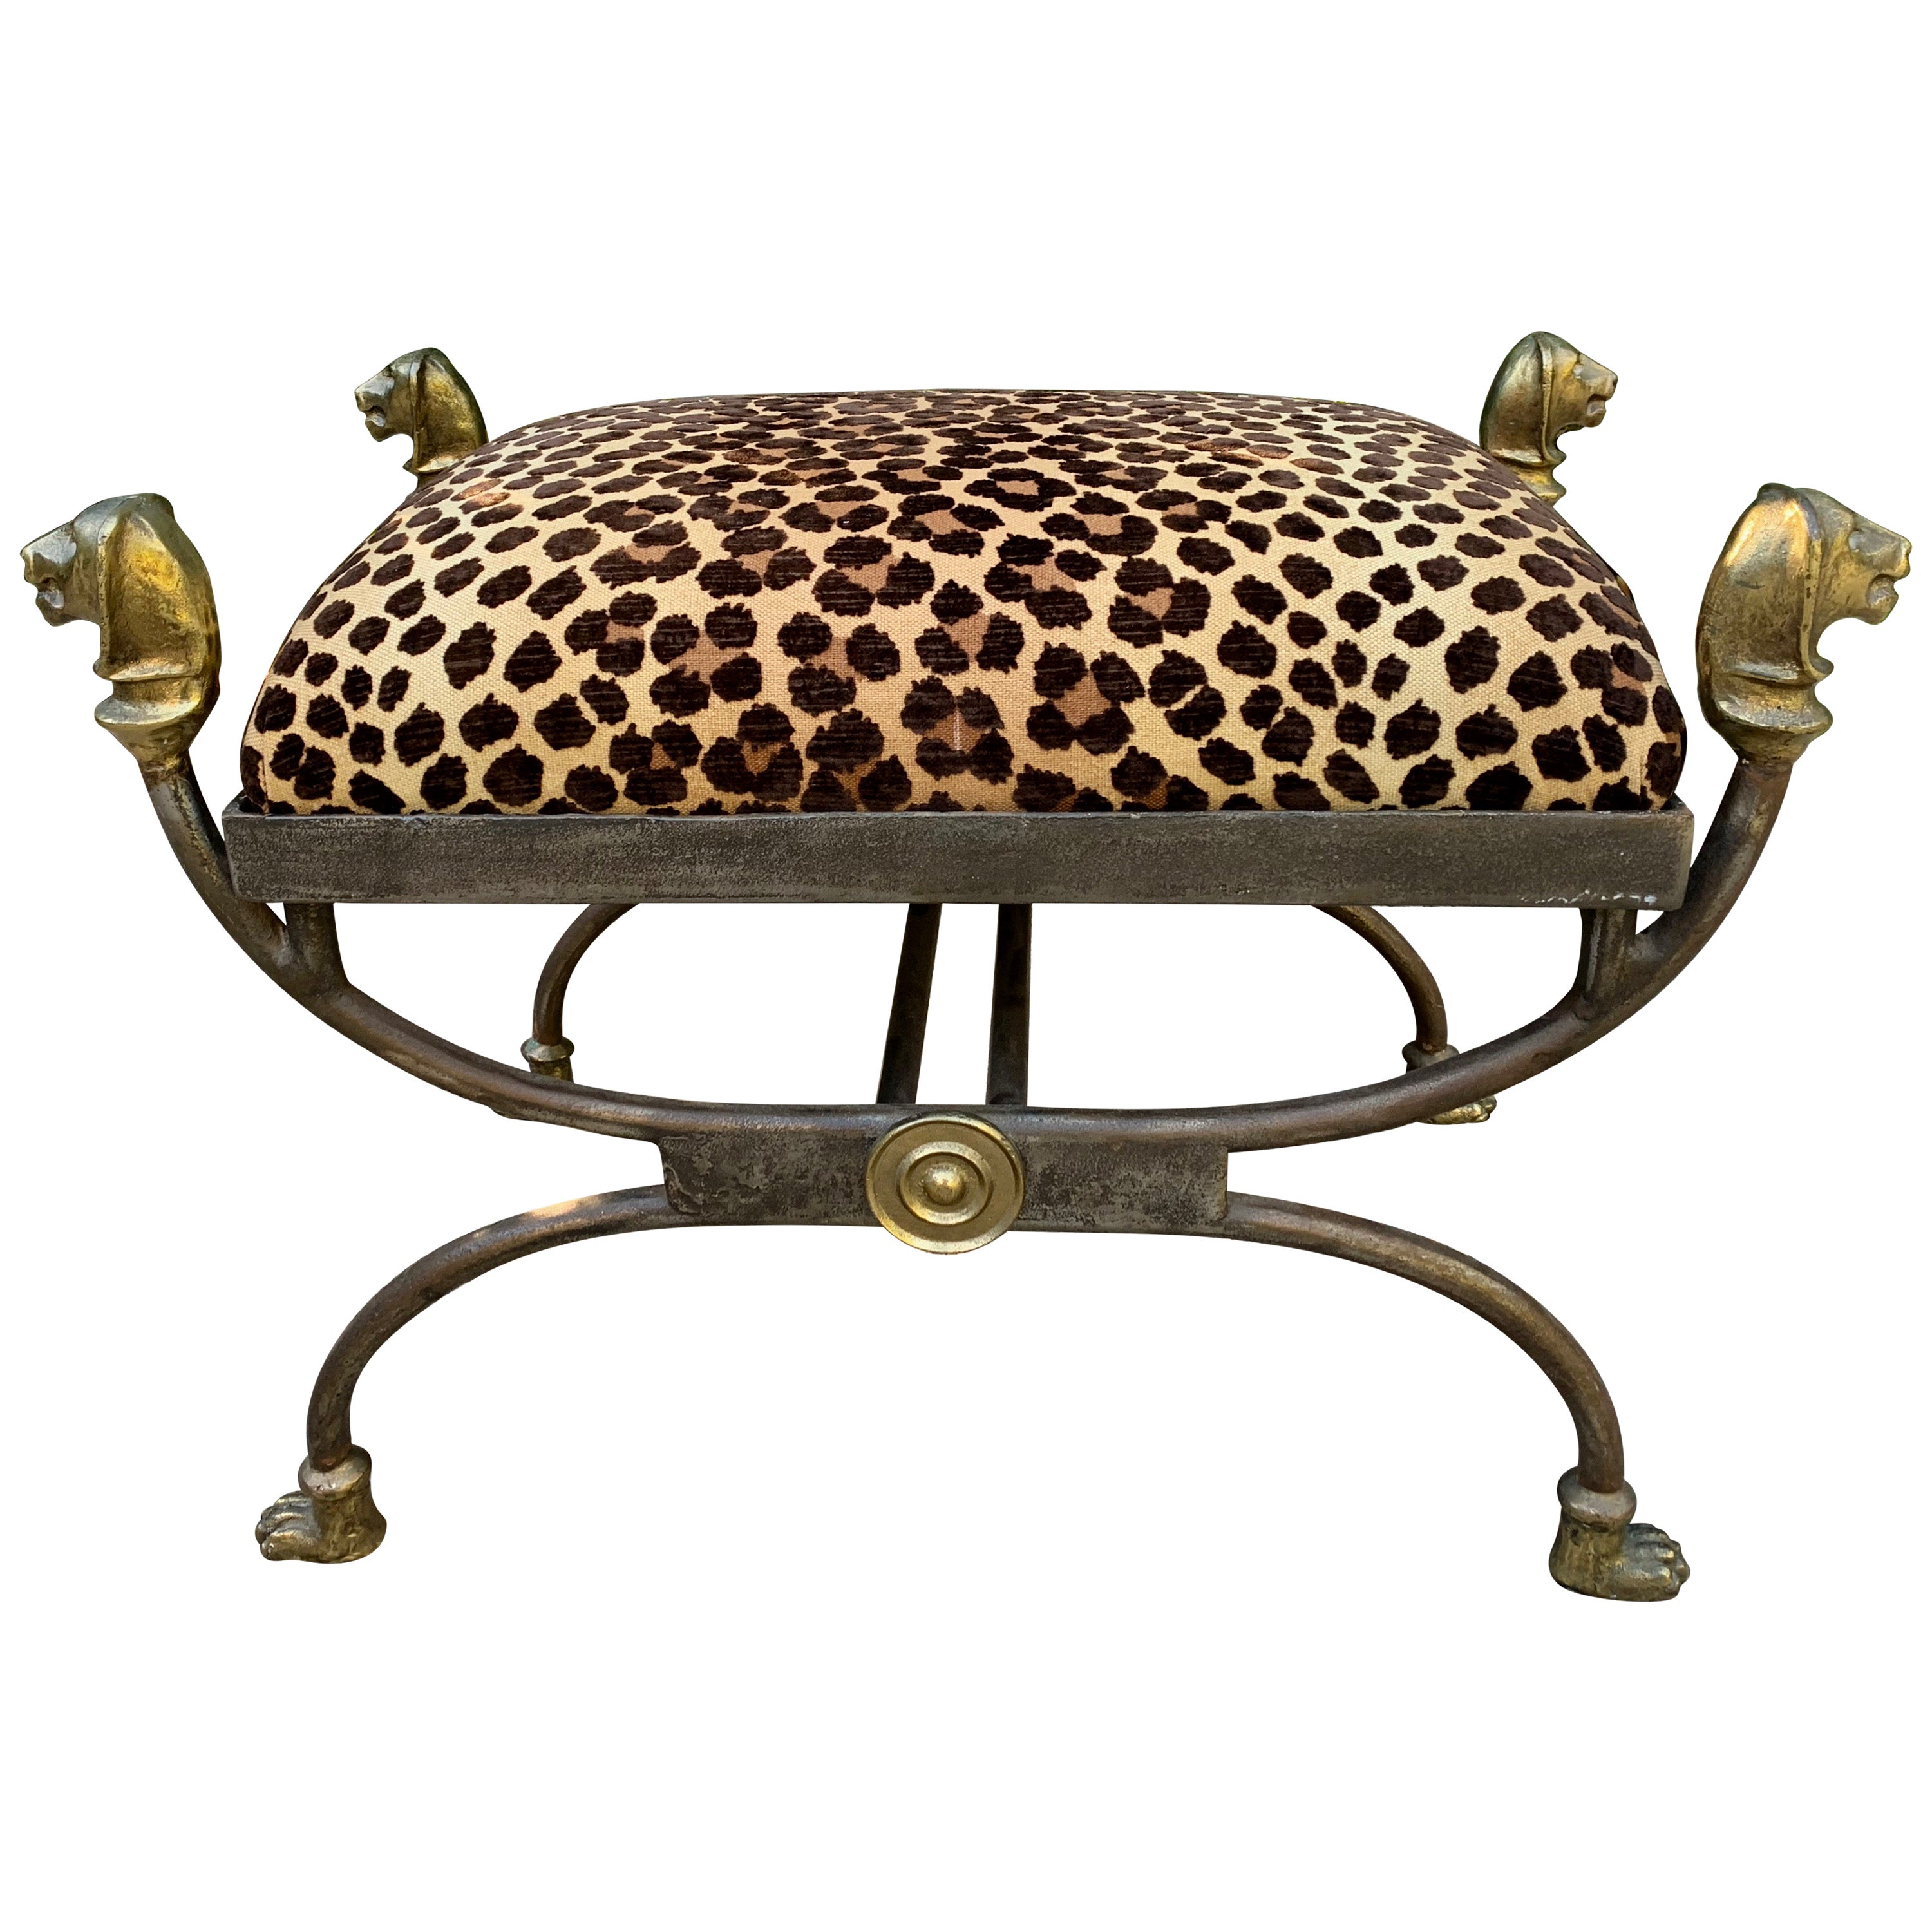 Wrought Iron Stool with Bronze Finials